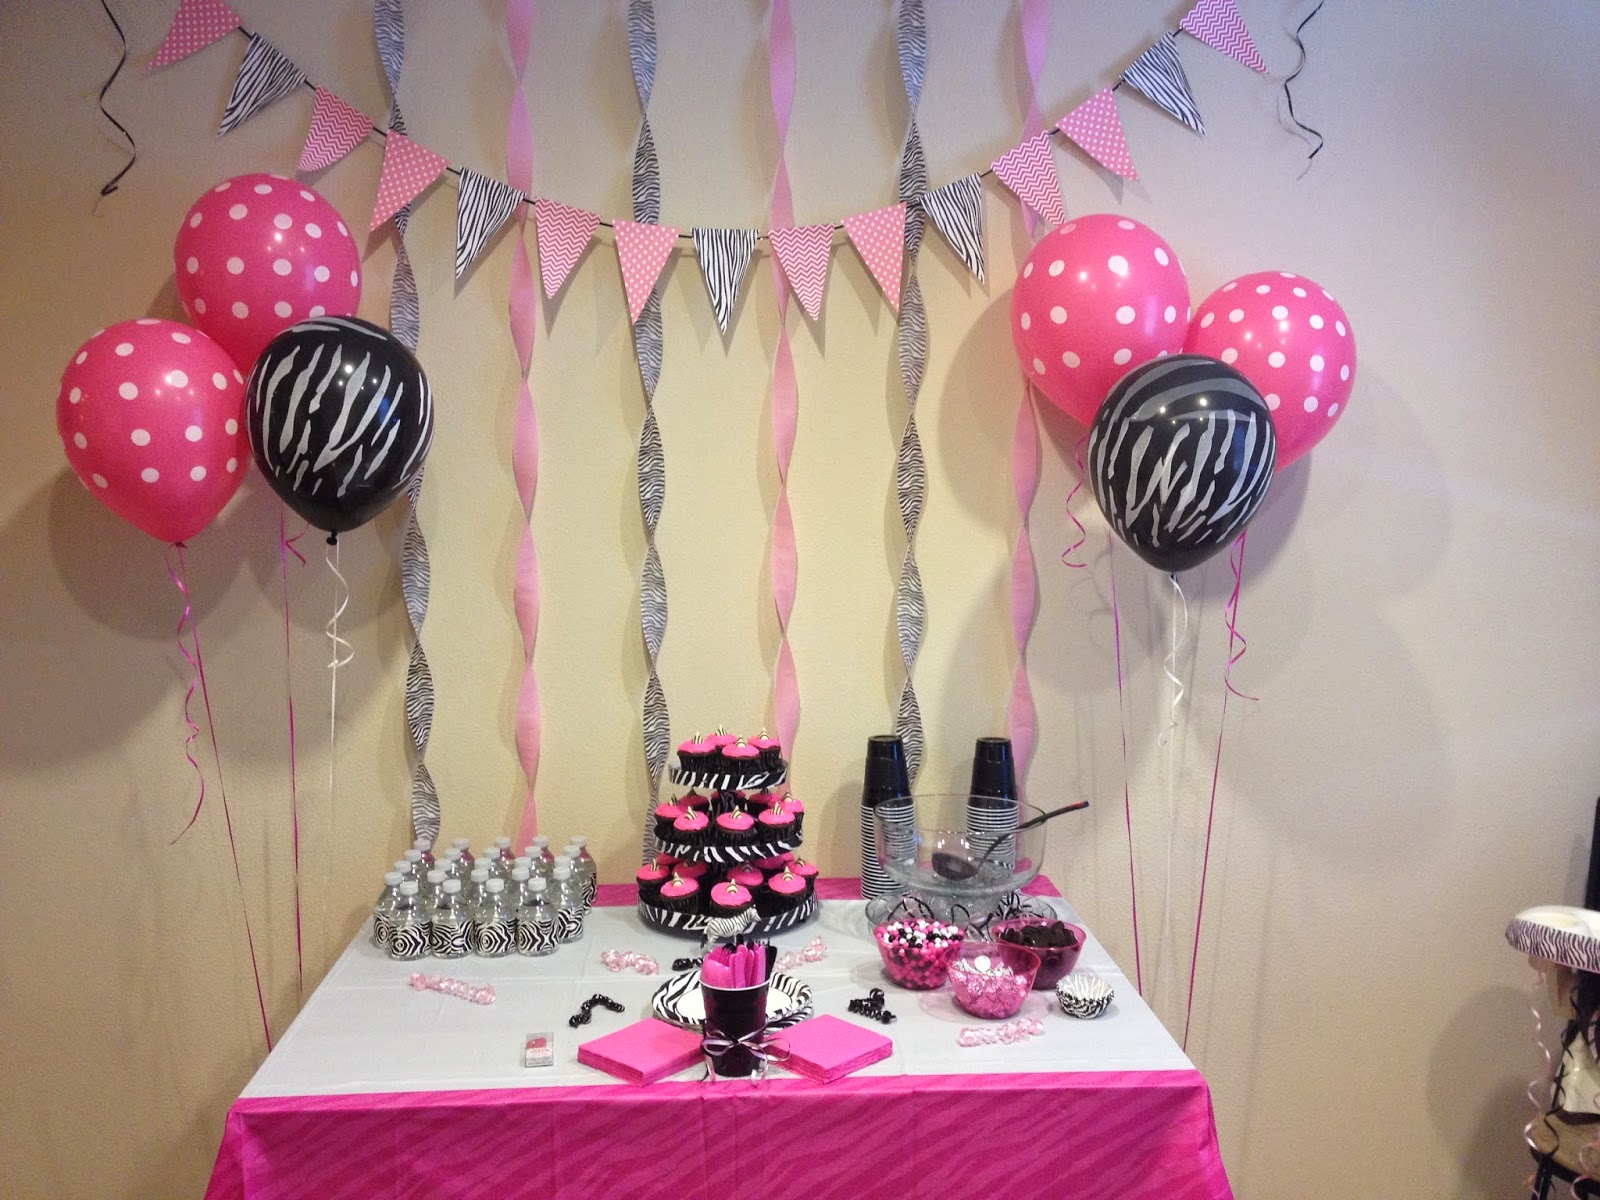 HECK FRIDAYS HOT PINK & ZEBRA BIRTHDAY PARTY